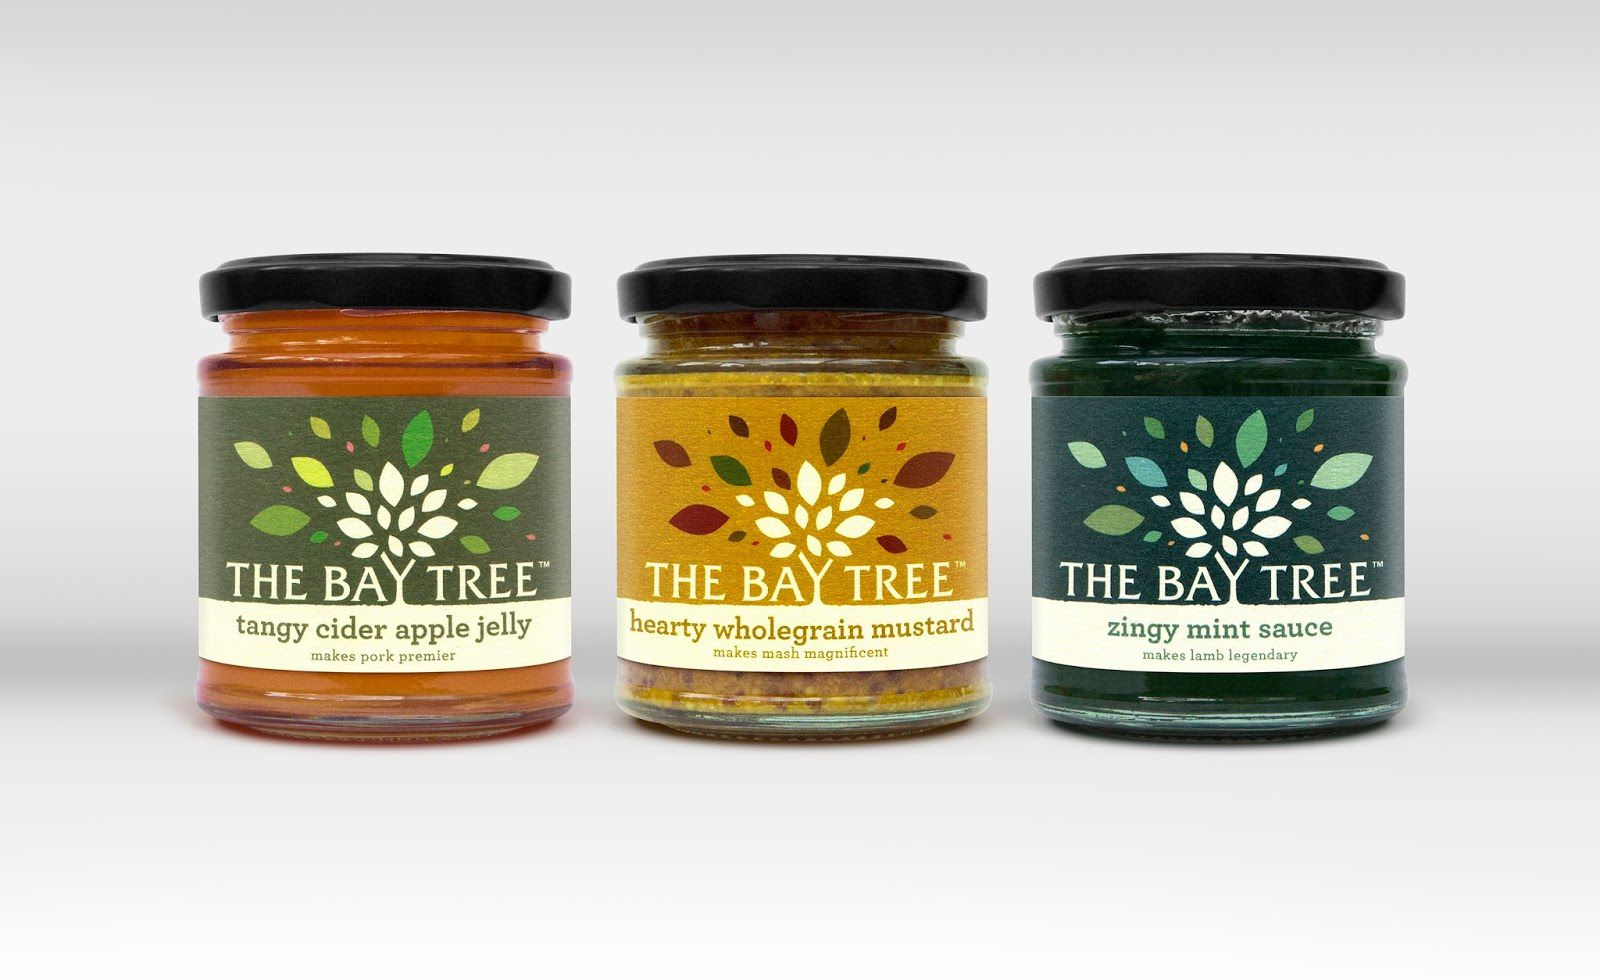 The Bay Tree - Bay Tree Foods Company (confitures, sauces et condiments) | Design : Afterhours, Royaume-Uni (août 2016)